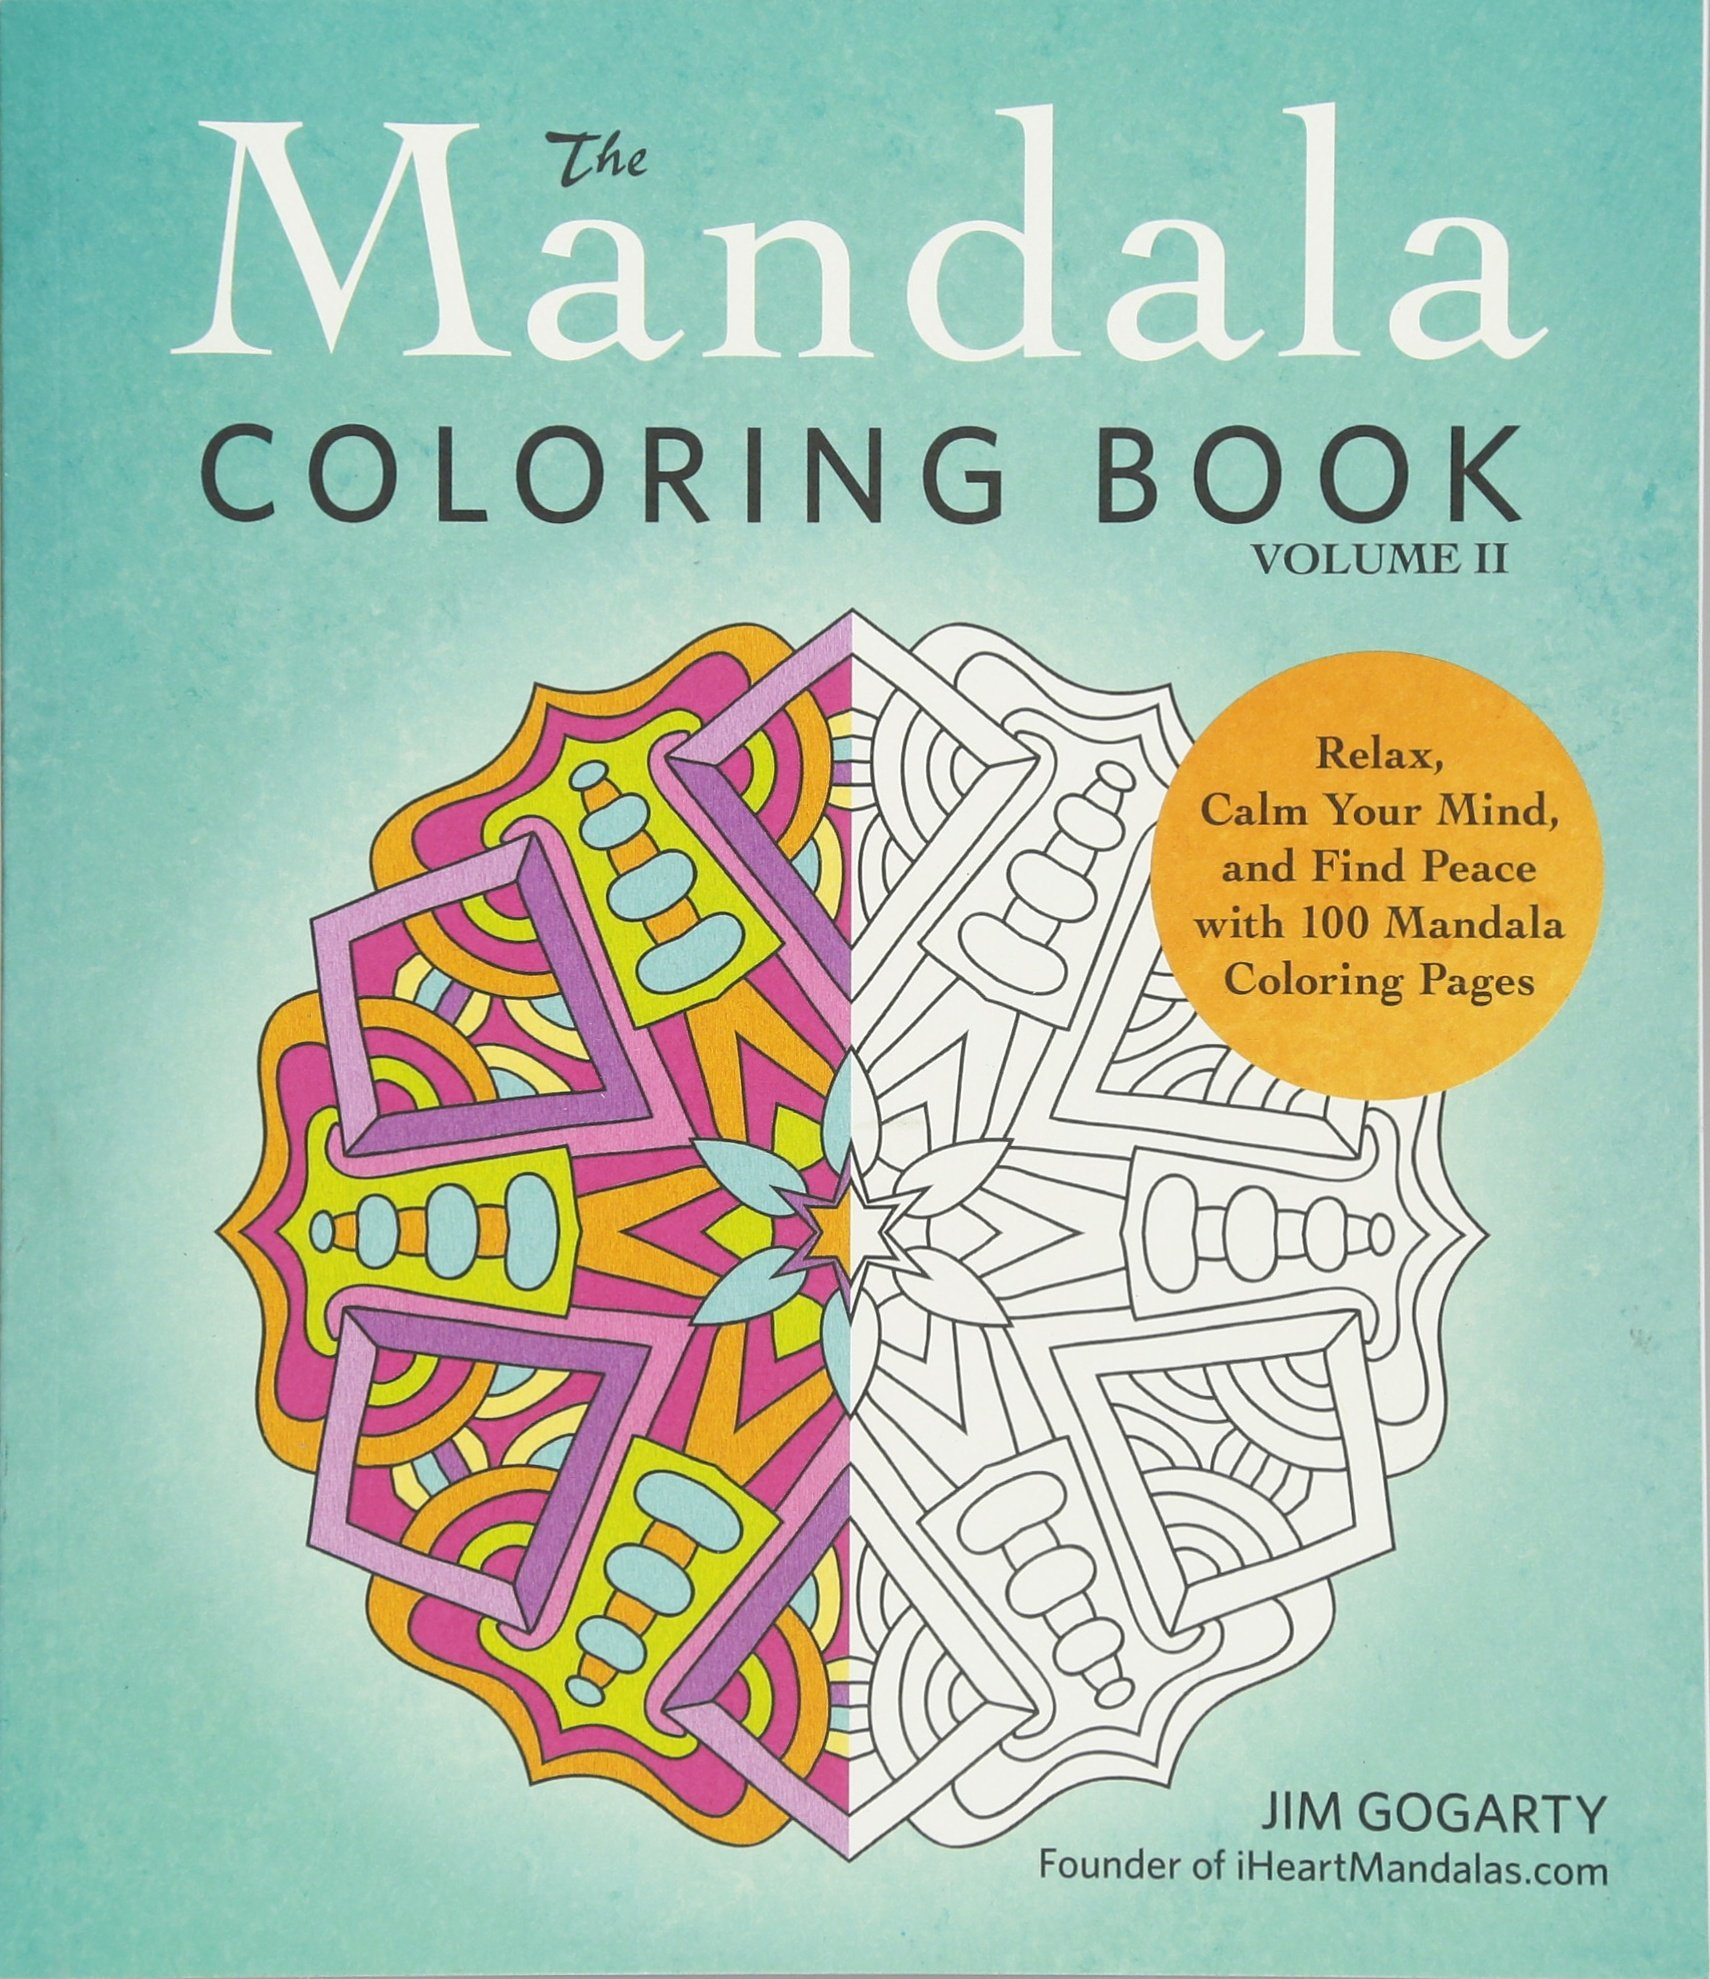 Amazon Com The Mandala Coloring Book Volume Ii Relax Calm Your